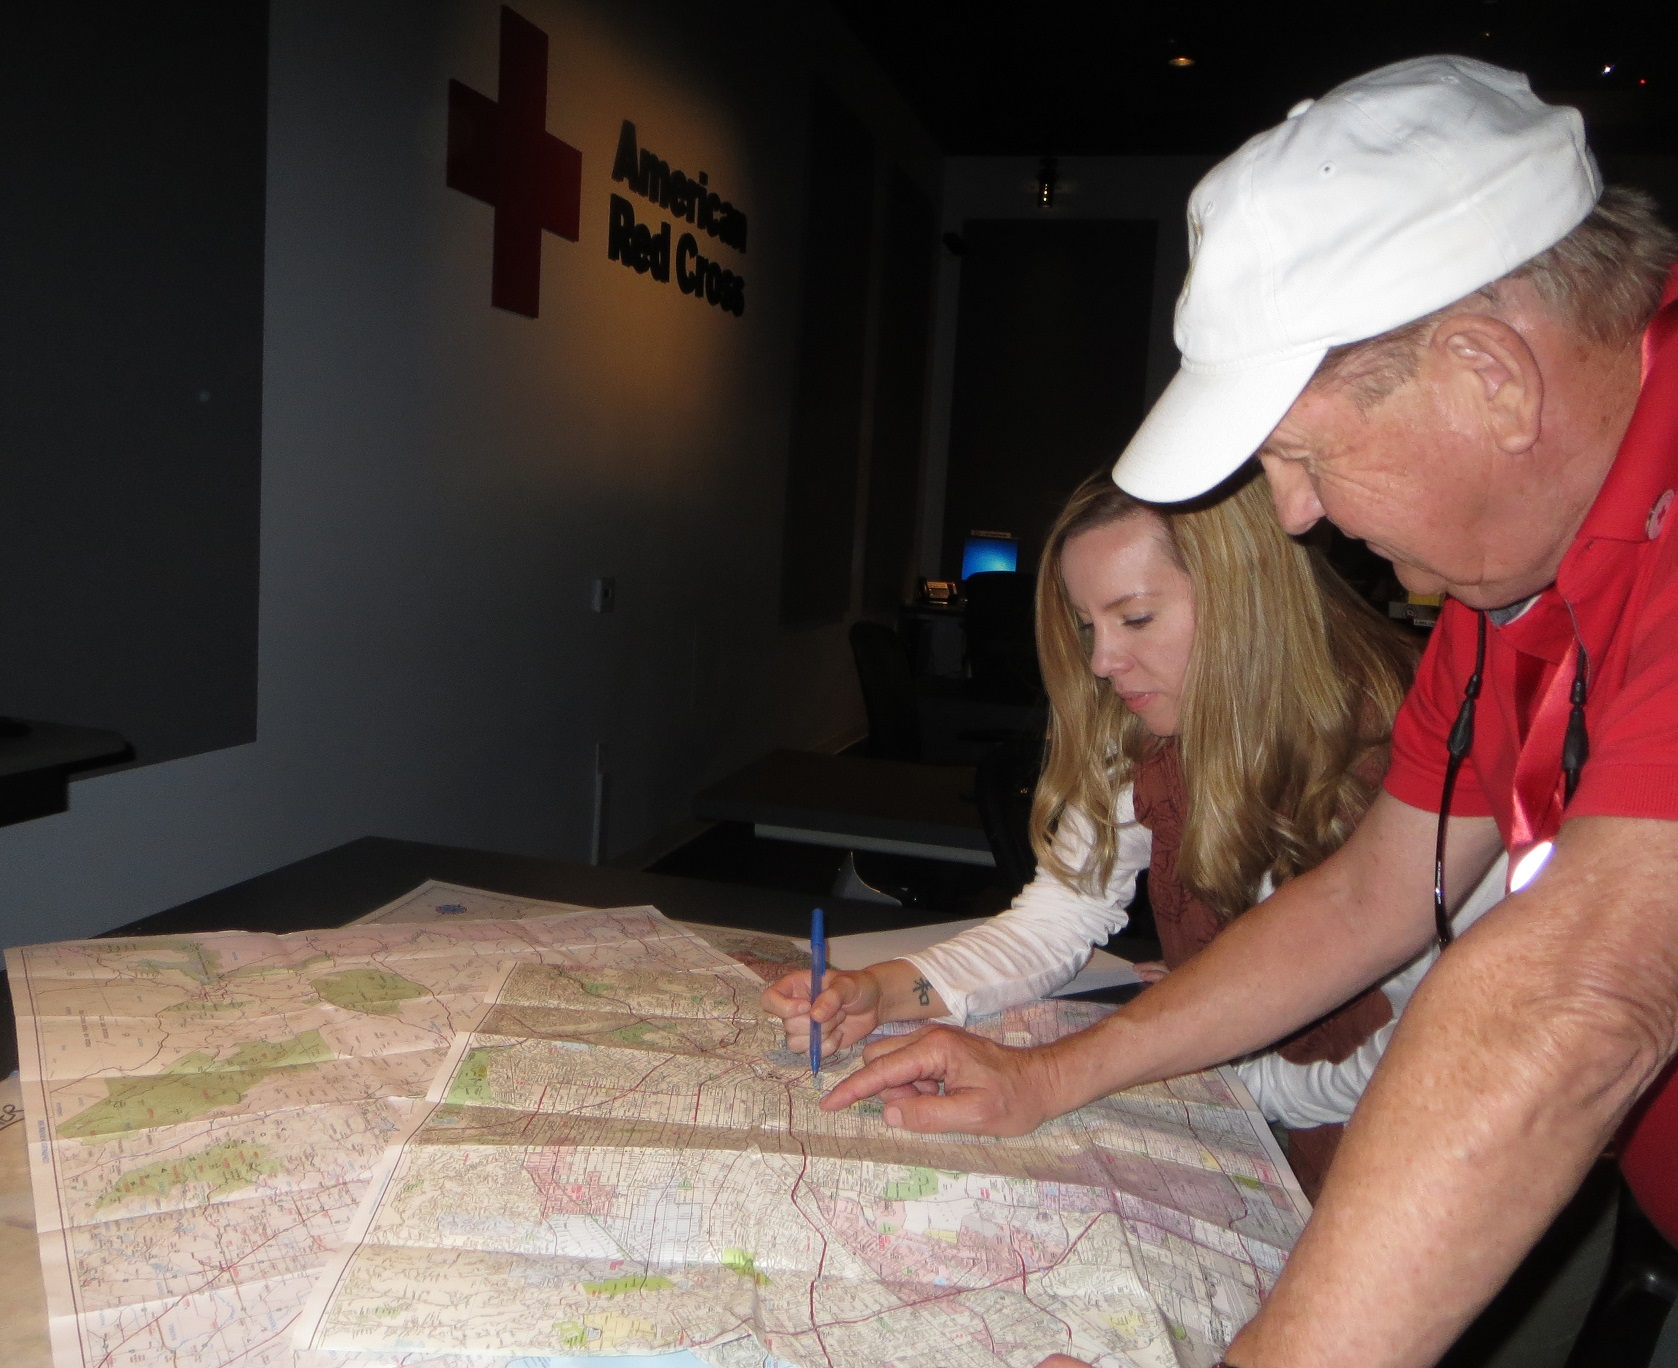 Caseworker Doug Wiita and Supervisor Kerry Khan look over a map of Los Angeles to identify locations to search.